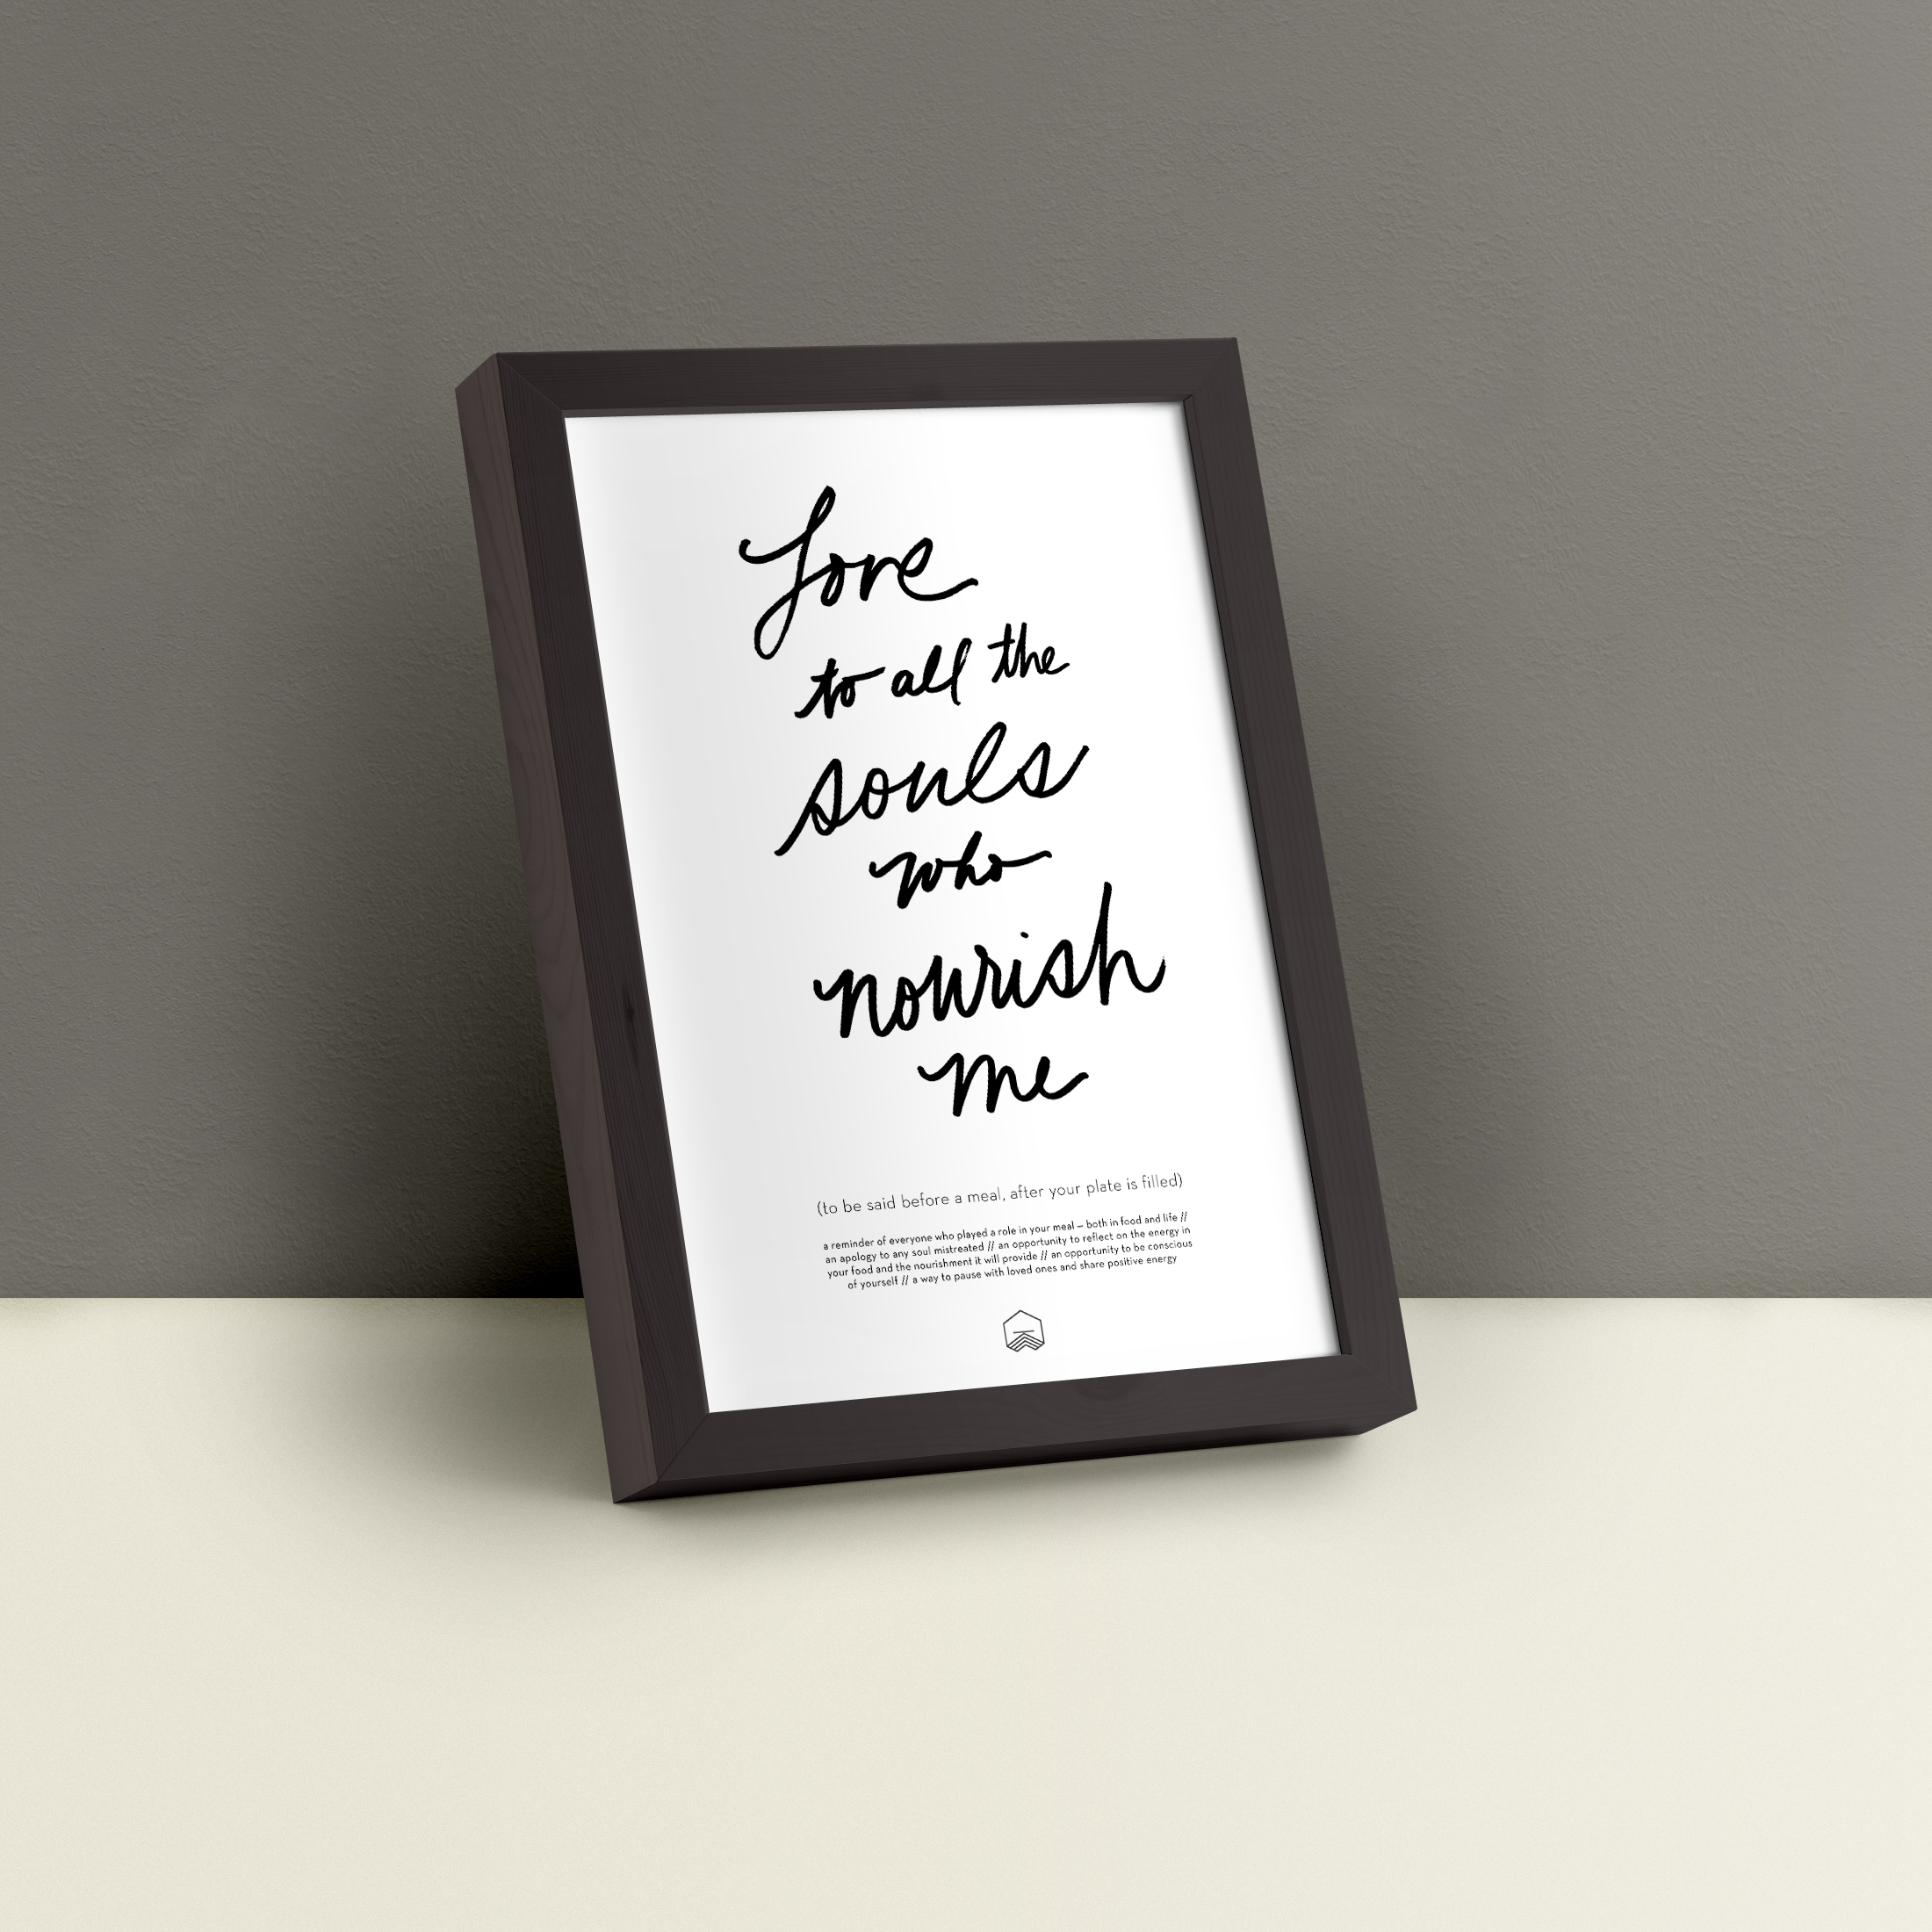 Meal Mantra Poster    See details + more sizes available for download here